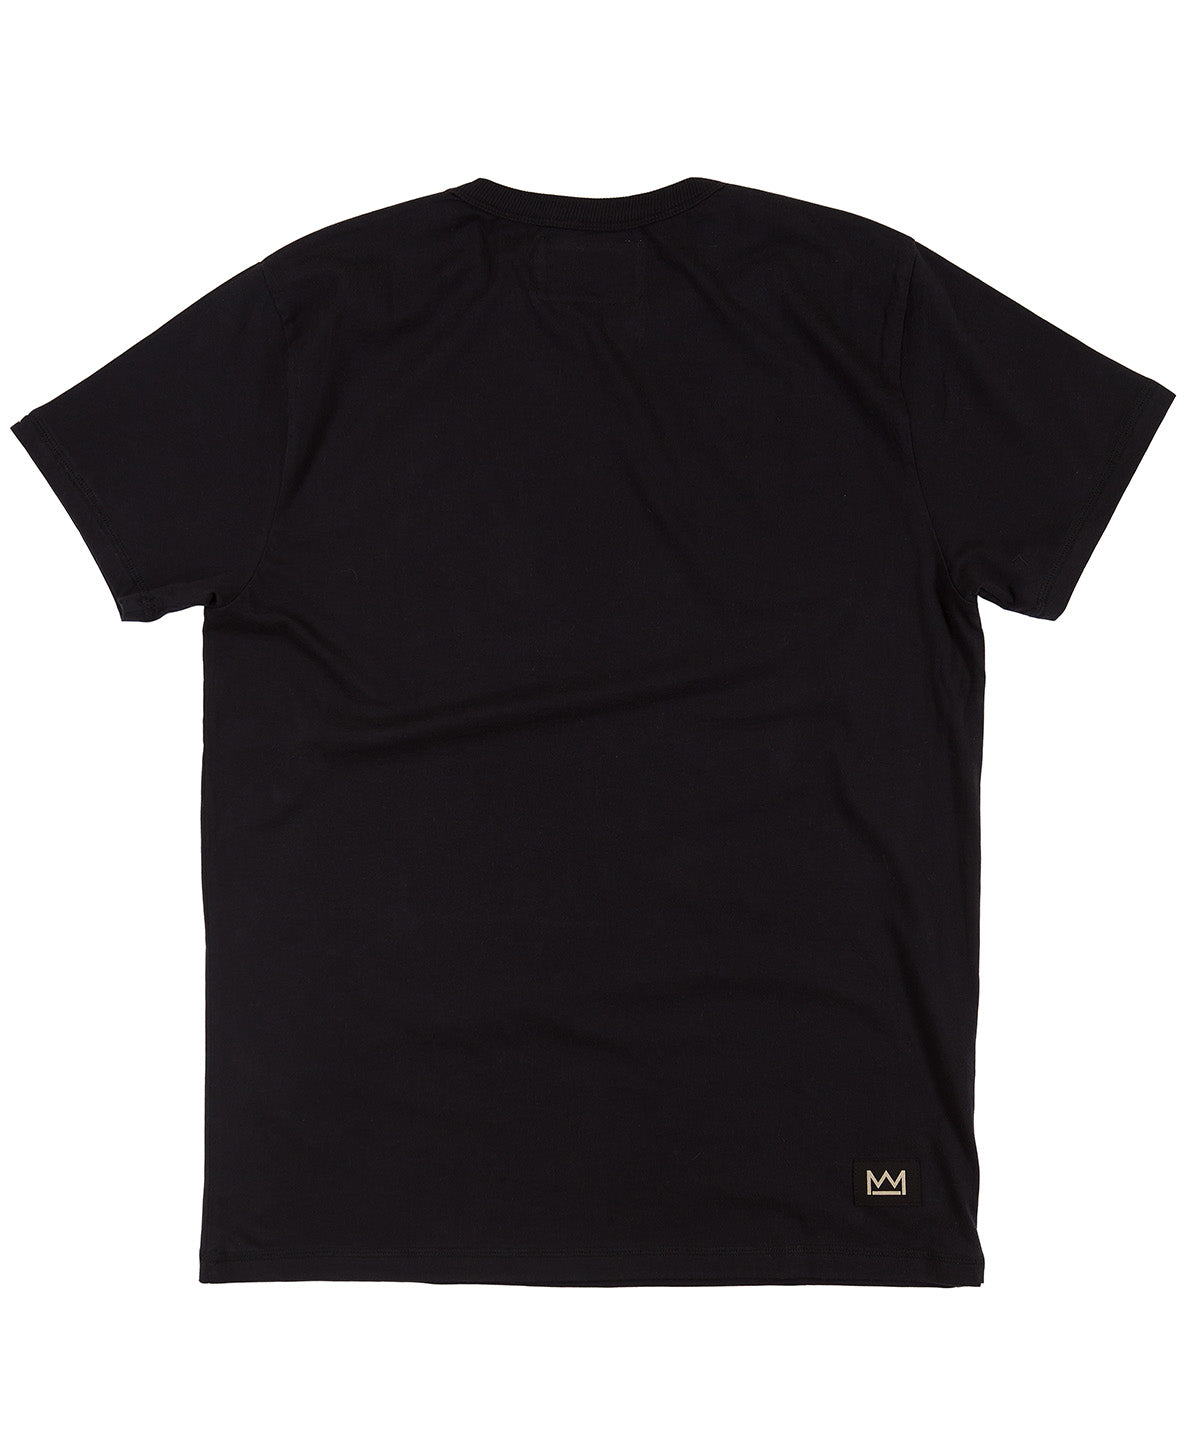 Mateus Bailon Give T-Shirt Black